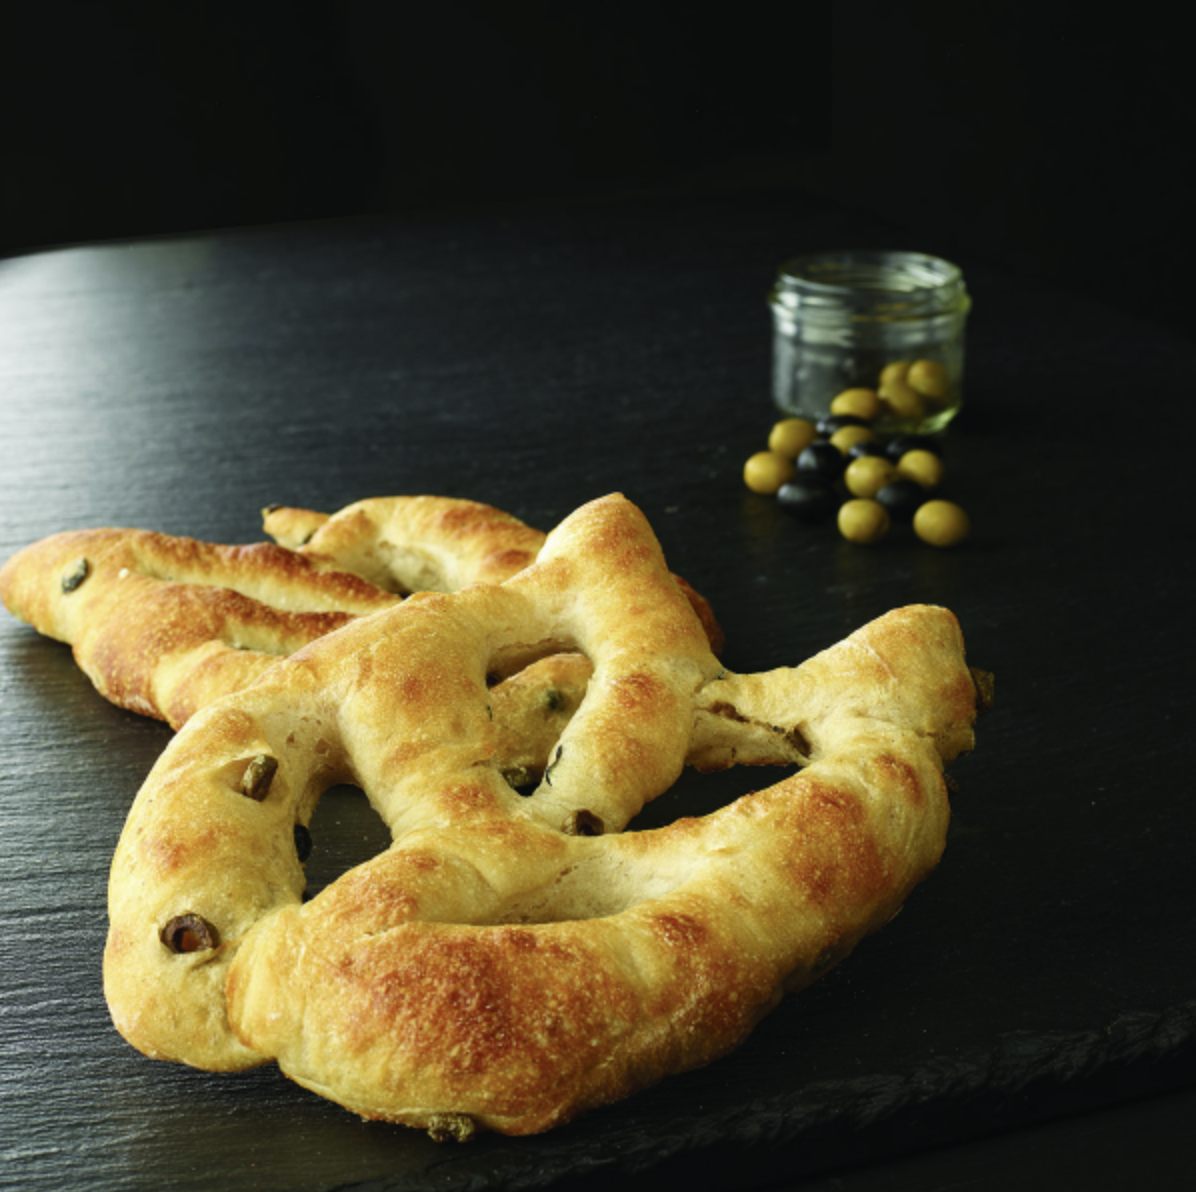 Boulangerie PAUL - Fougasse aux 2 olives